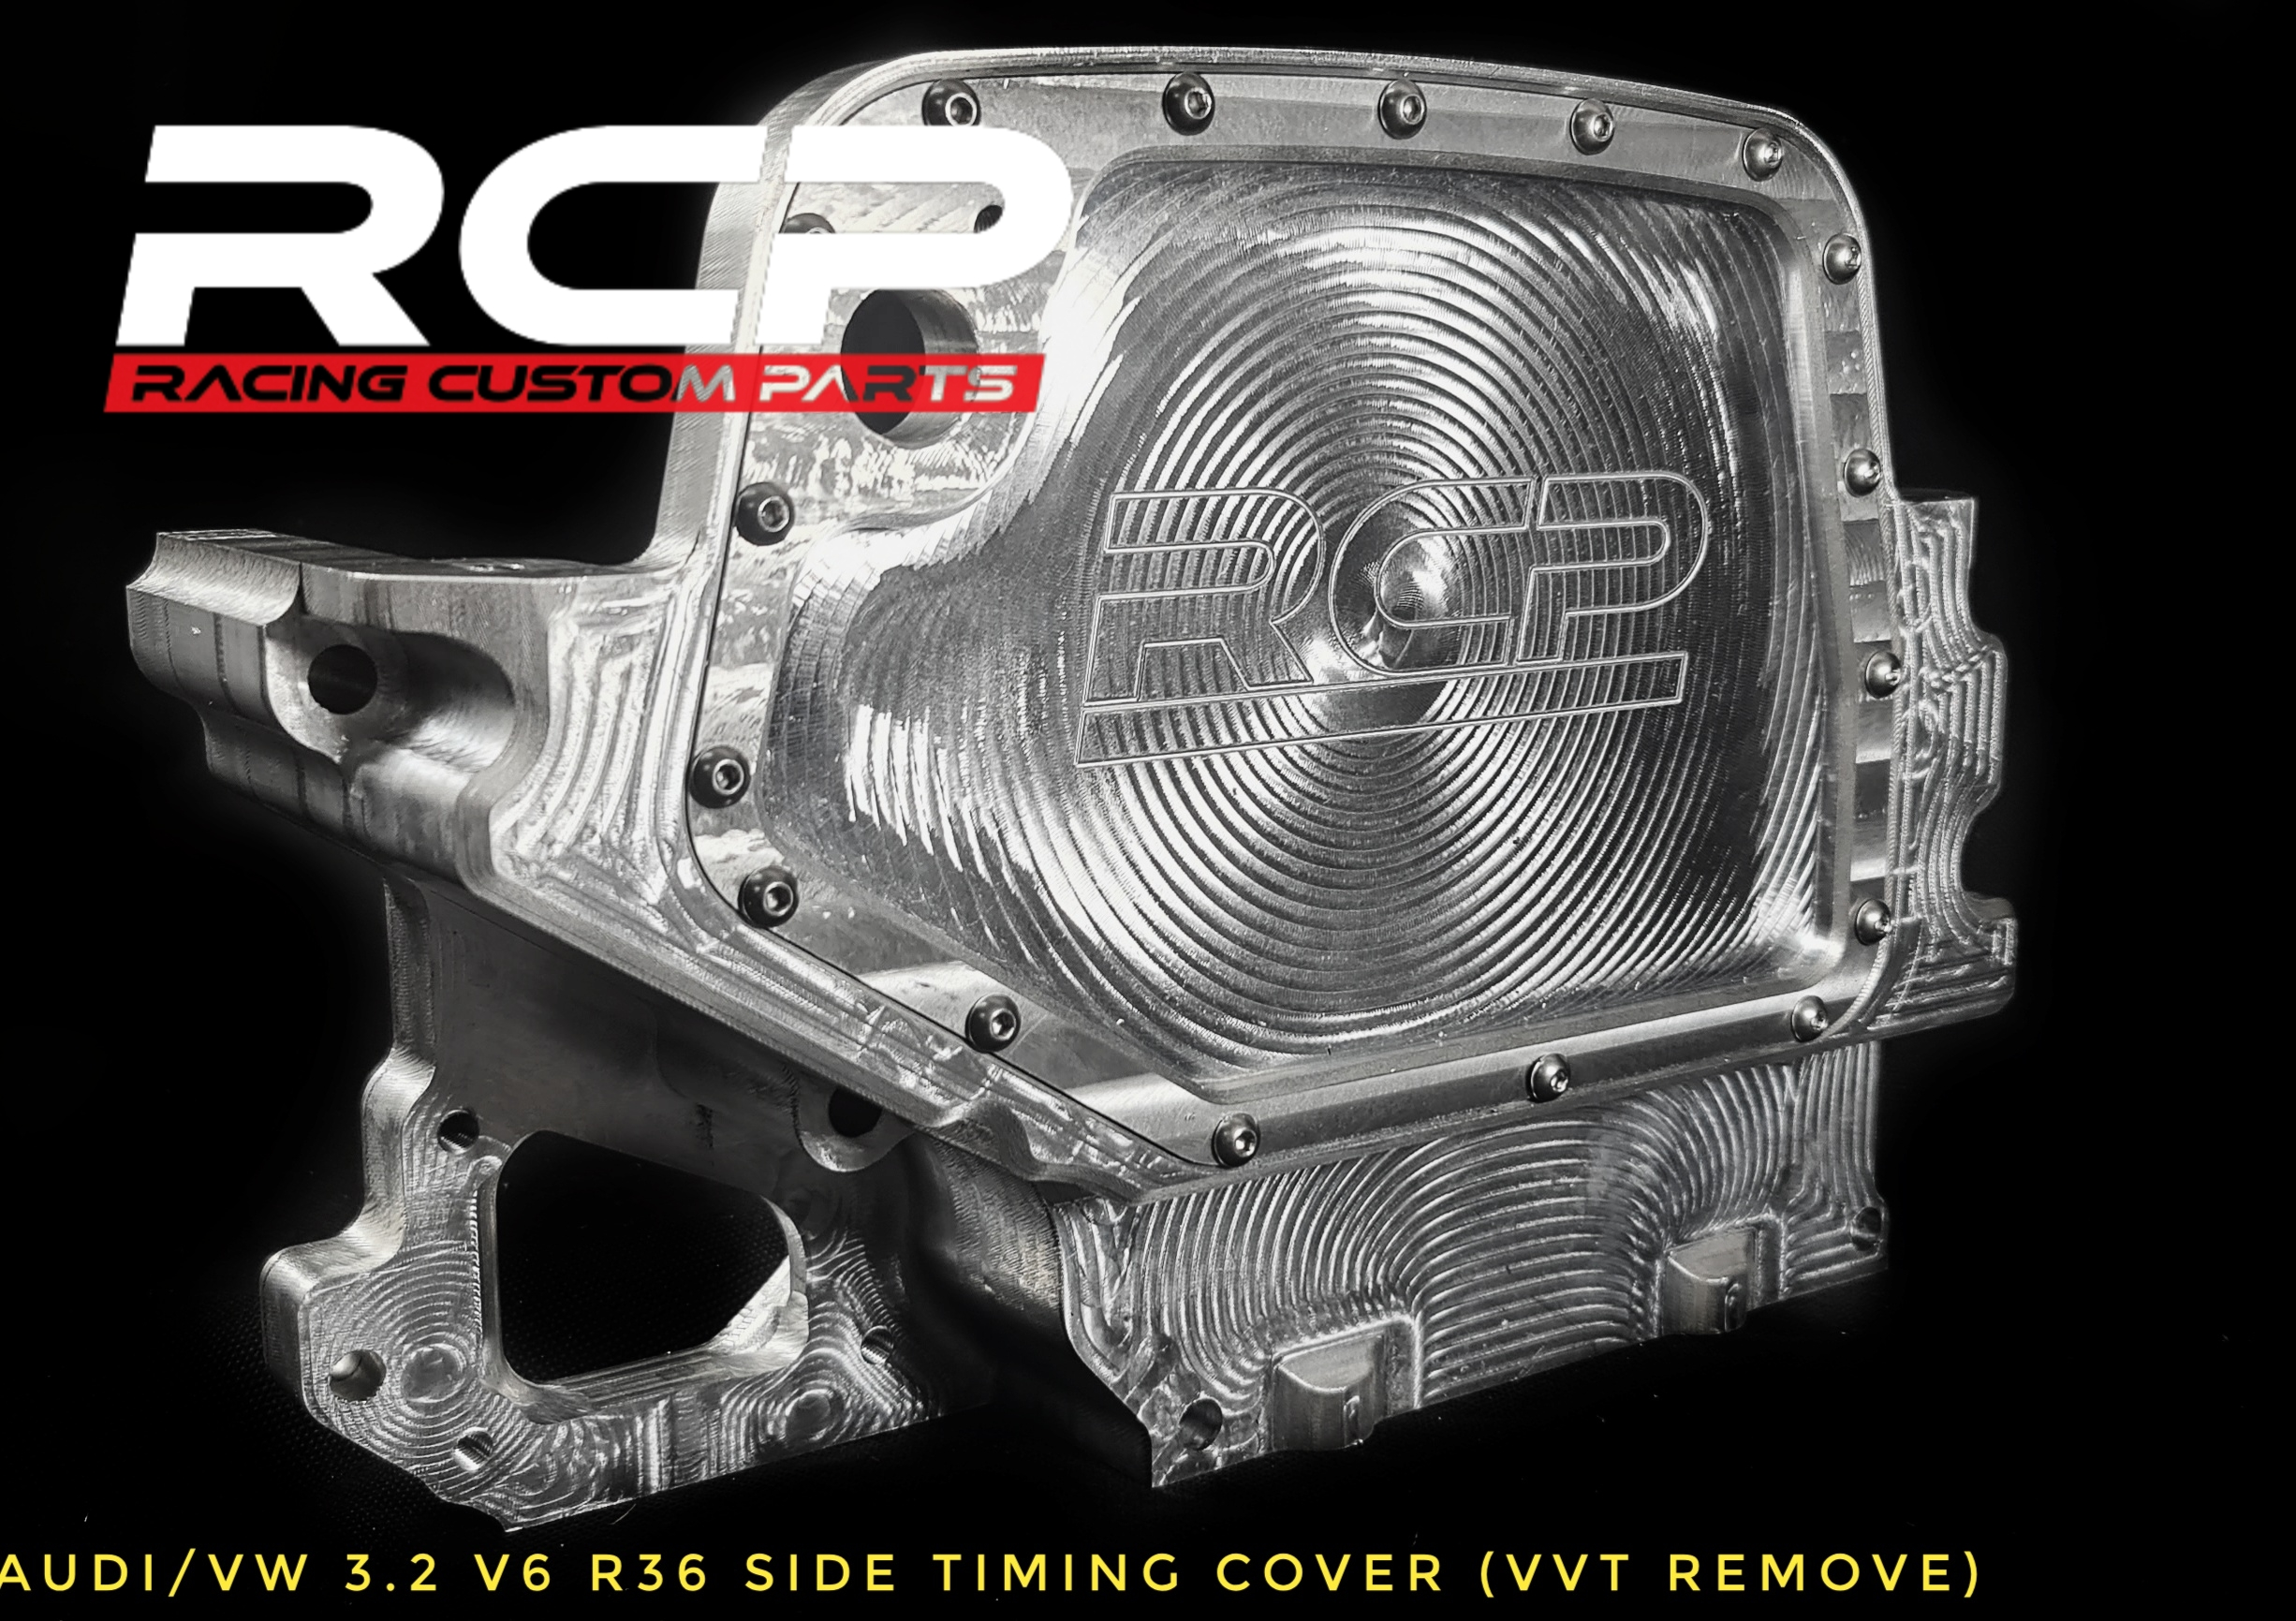 r32 vr6 r36 side cover no vvt remove rcp racing custom parts billet cnc machined audi vw turbo because race car engine cam cover